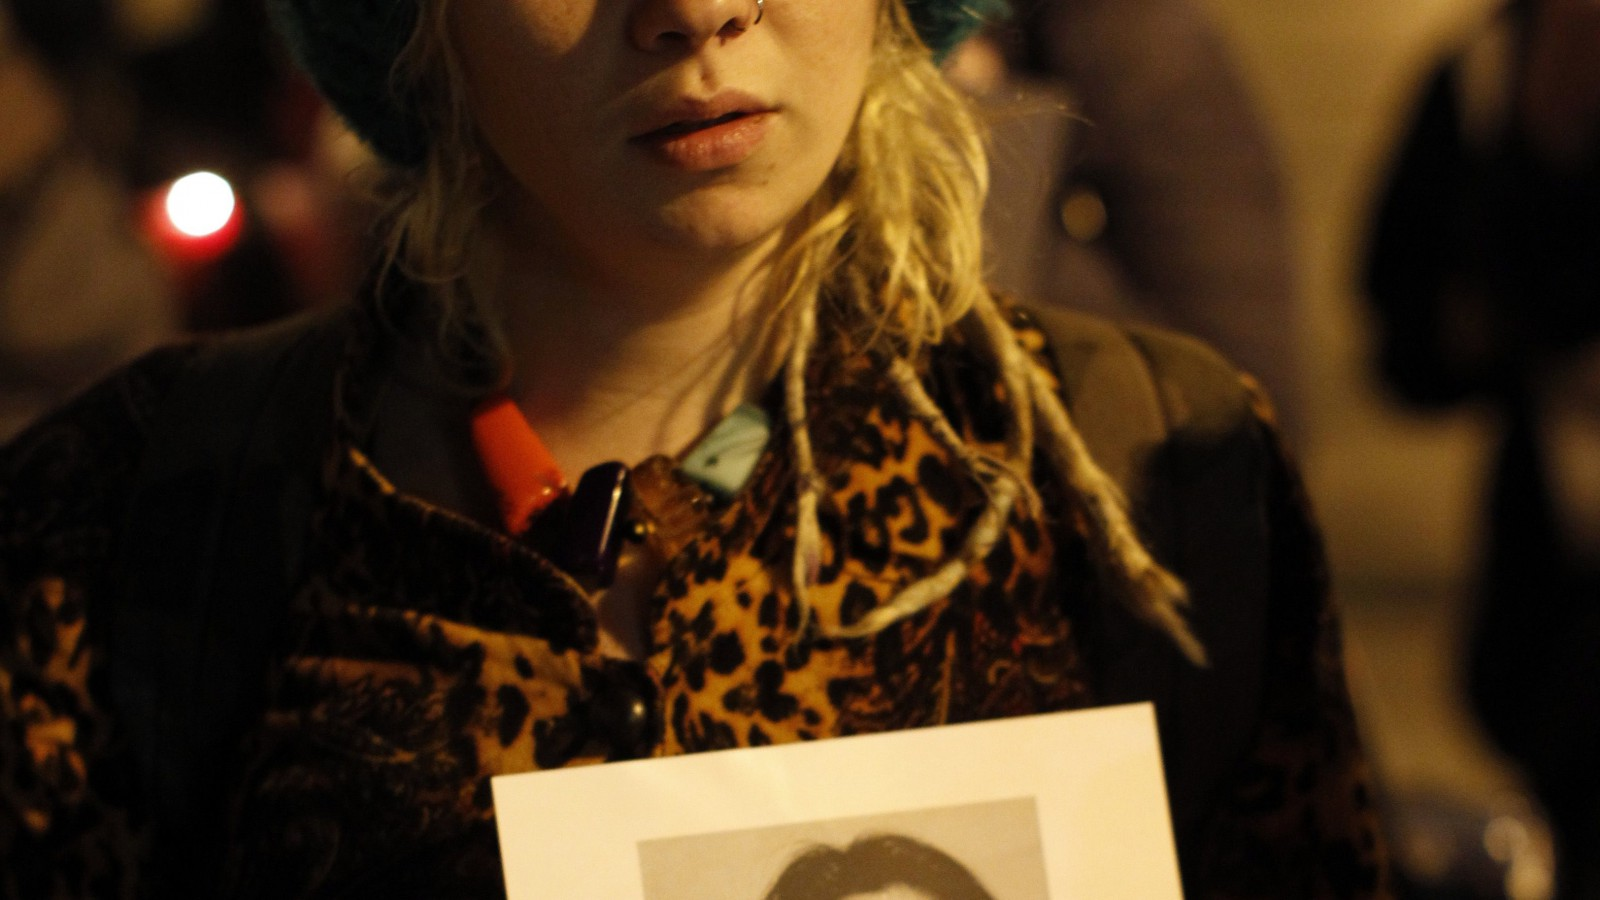 A woman holds a picture of Savita Halappanavar during a candle lit vigil outside Belfast City Hall, Northern Ireland, Thursday, Nov. 15, 2012, for Savita Halappanavar, the 31-year old Indian woman who was 17-weeks pregnant when she died of blood poisoning after suffering a miscarriage in Galway, Ireland, on 28 October.  Savita Halappanavar's father, Andanappa Yalagi, said the combination of medical negligence and Irish abortion laws led to his daughter's death.  The parents of an Indian woman who suffered a miscarriage and died after being refused an abortion in an Irish hospital slammed Ireland's abortion laws Thursday. (AP Photo/Peter Morrison)